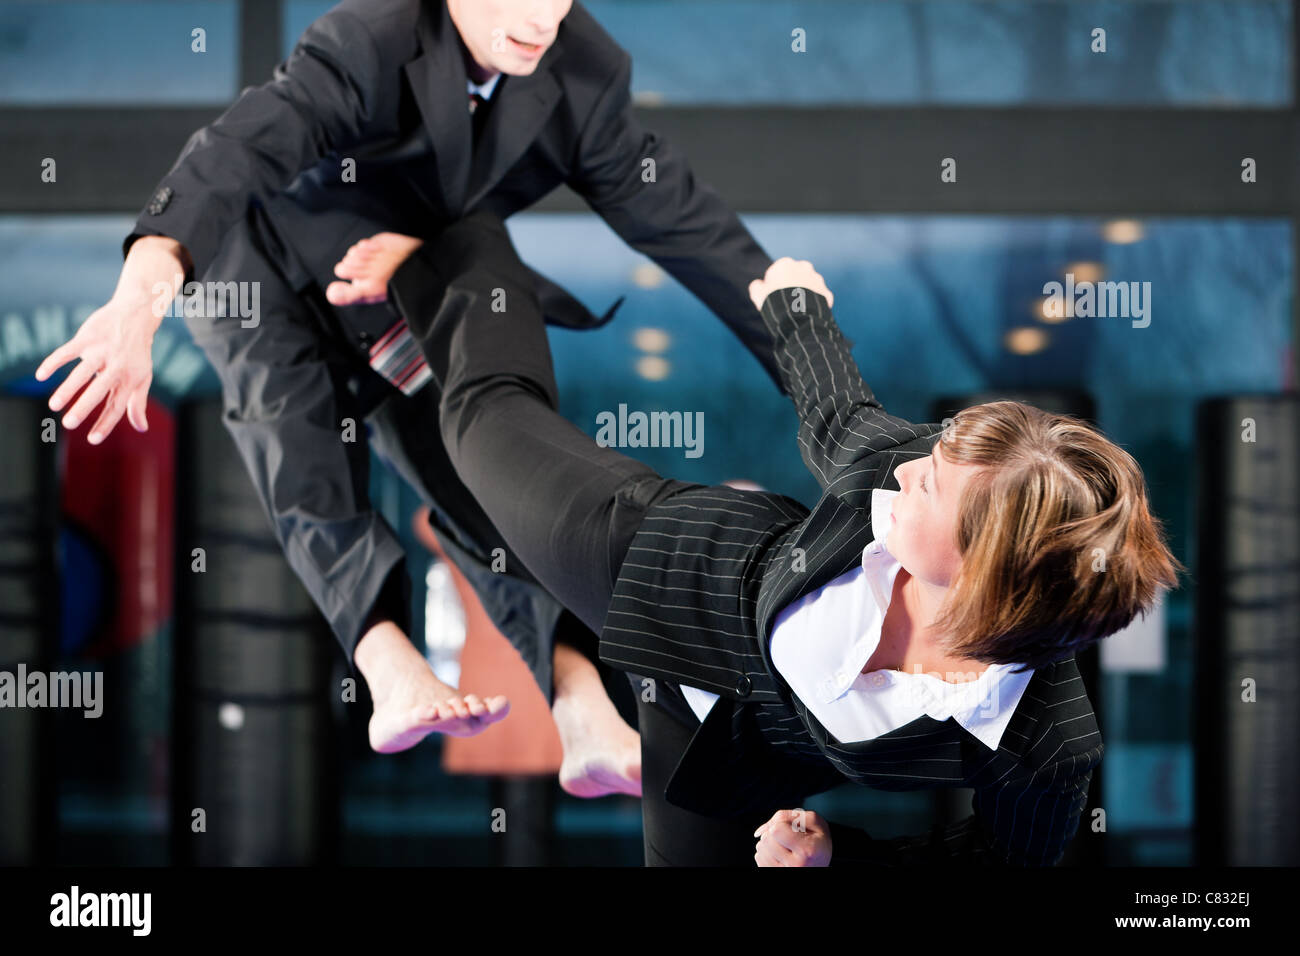 Business concept - People in a gym in martial arts training exercising Taekwondo, both wearing suits - Stock Image